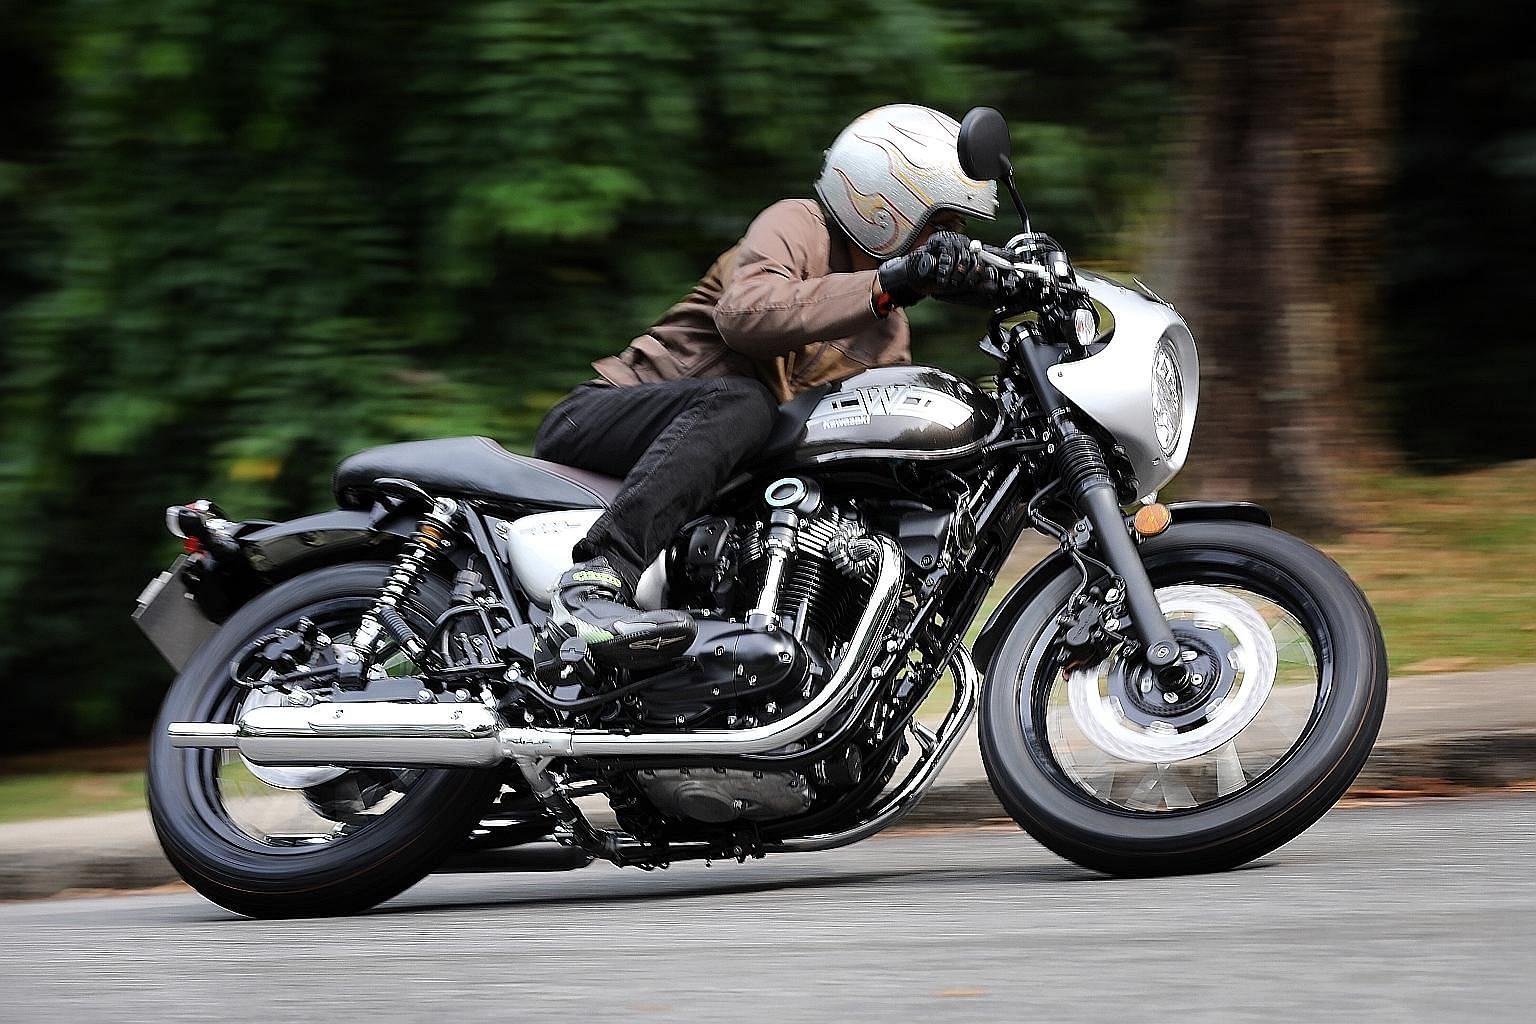 The Kawasaki W800 Cafe's roots go back to the W1 of the 1960s. The Cafe's shape and form get minimal tweaks, more horsepower and modern paint schemes.